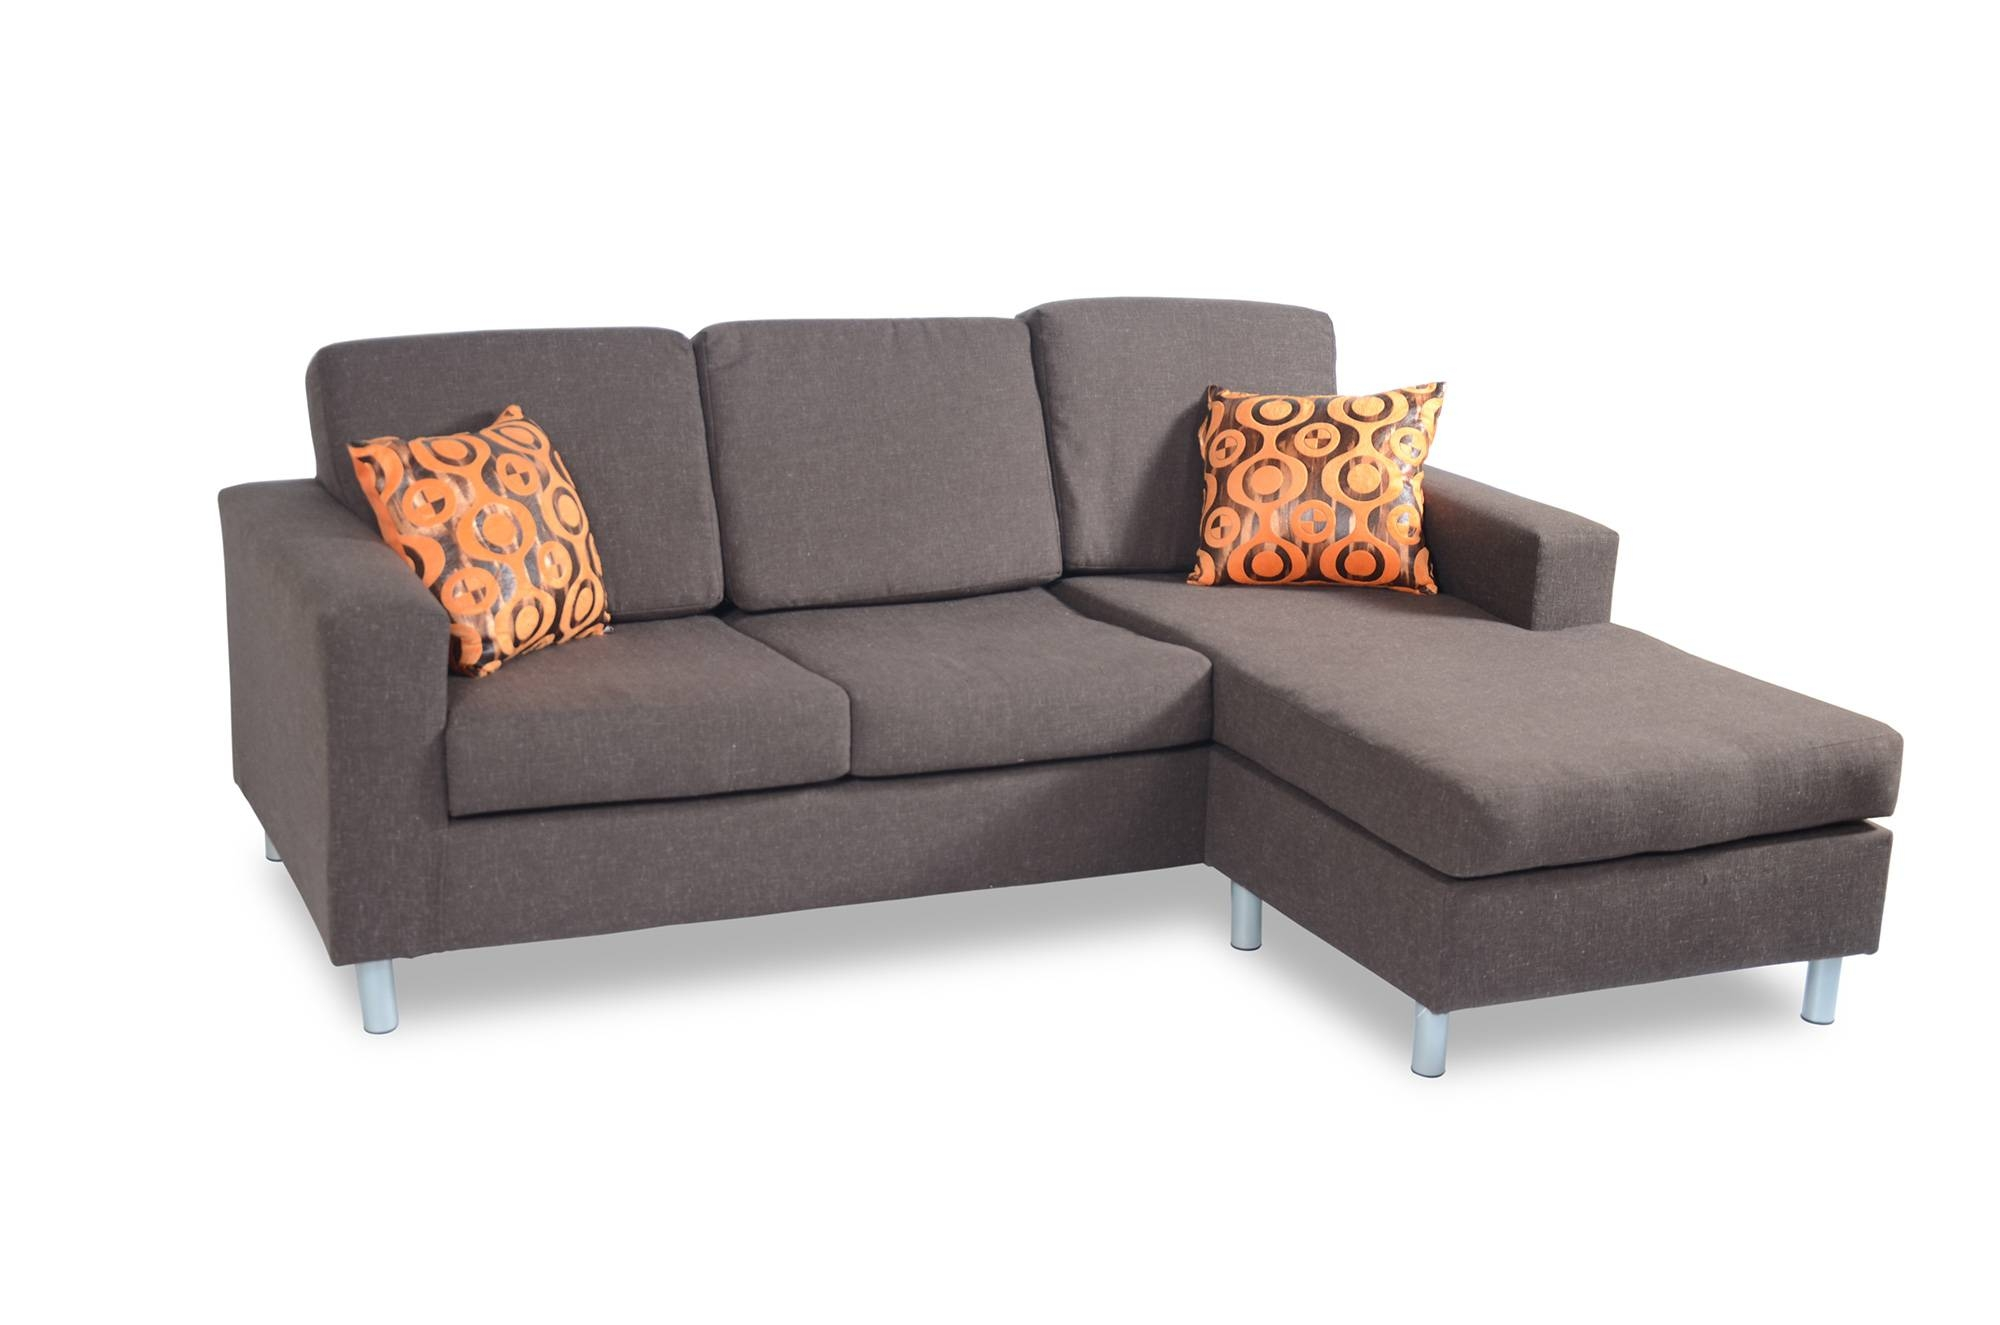 Deko Discount 24 Best 30 43 Of Sofa Corner Units